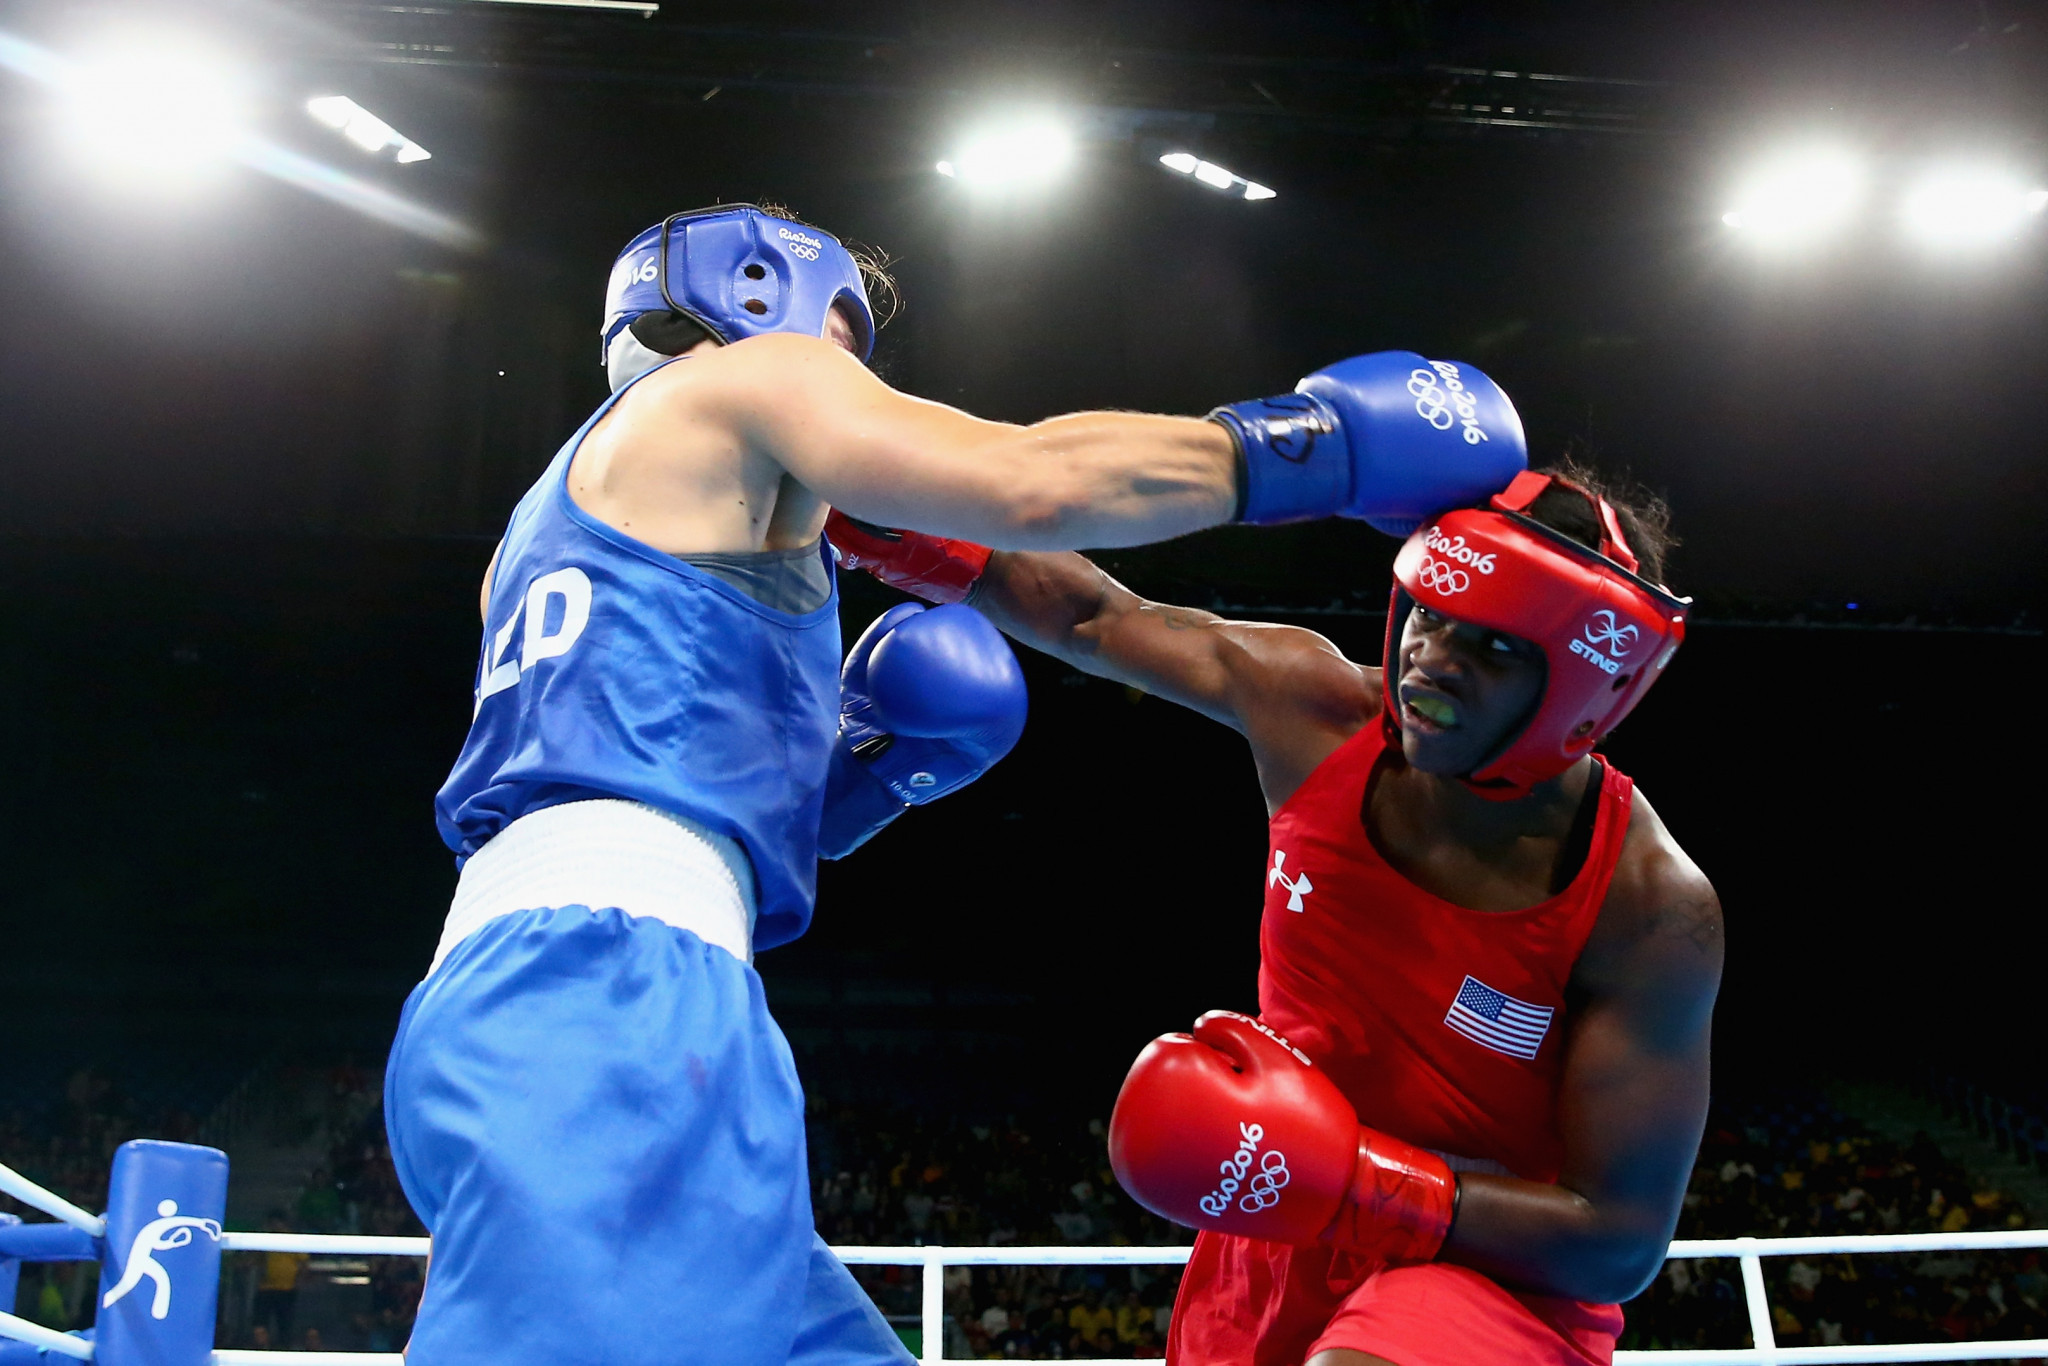 Achieving gender equality in boxing is considered essential for it to grow as a sport and an Olympic discipline ©Getty Images